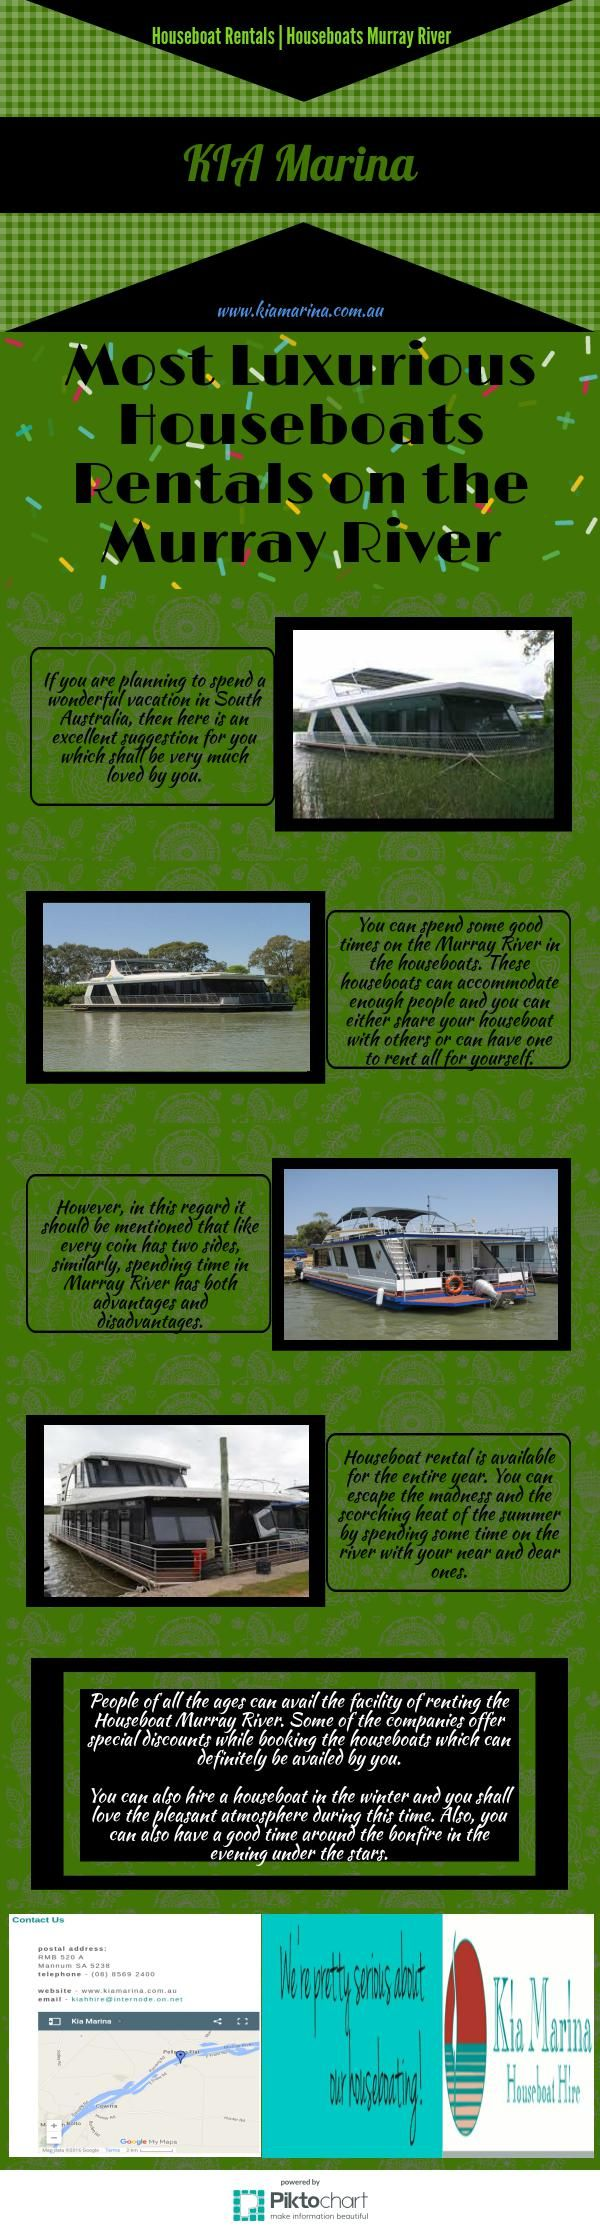 Most Luxurious Houseboats Rentals on the Murray River